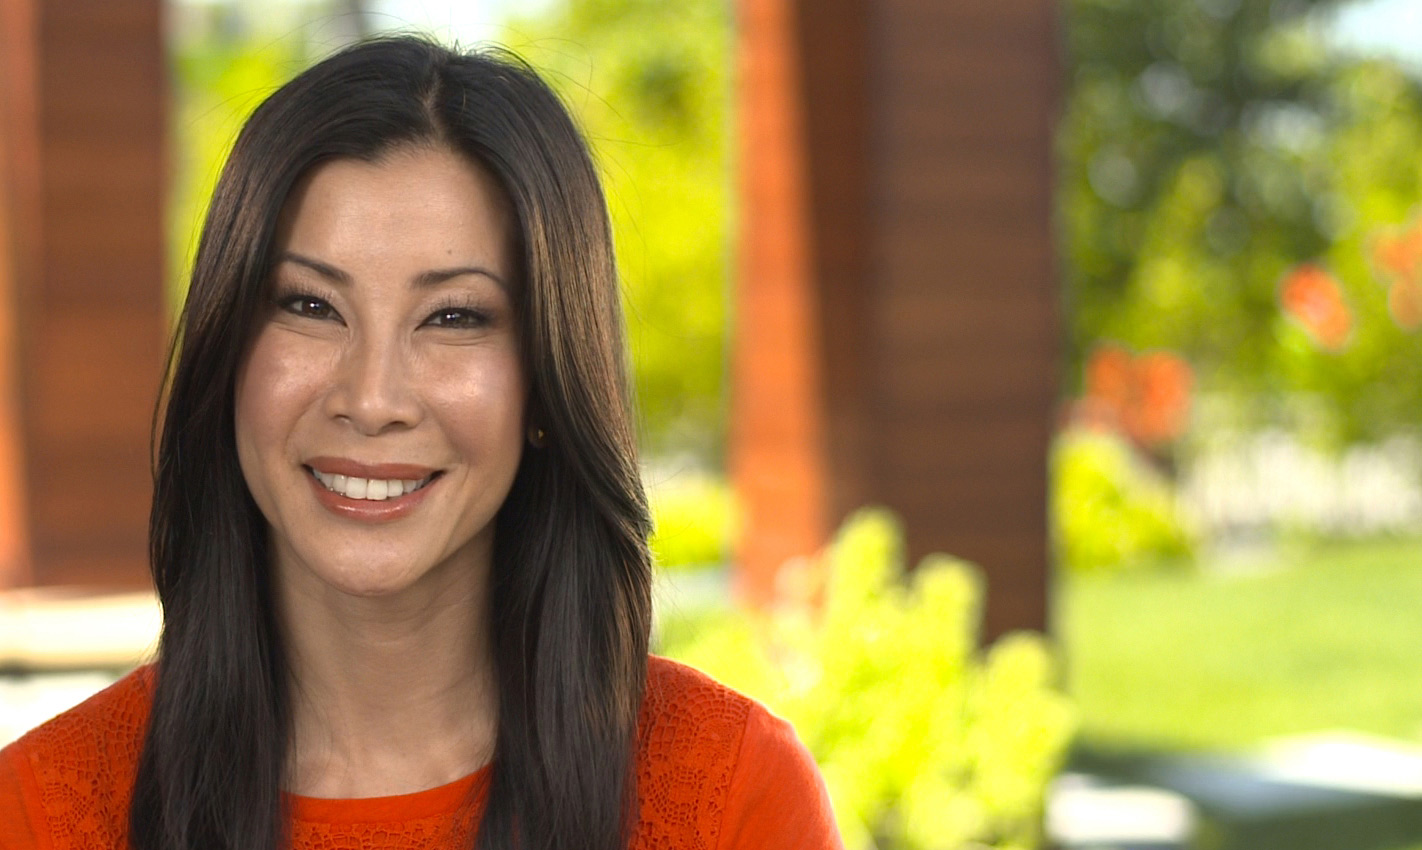 Lisa Ling Lisa ling sits down for anLisa Ling Channel One